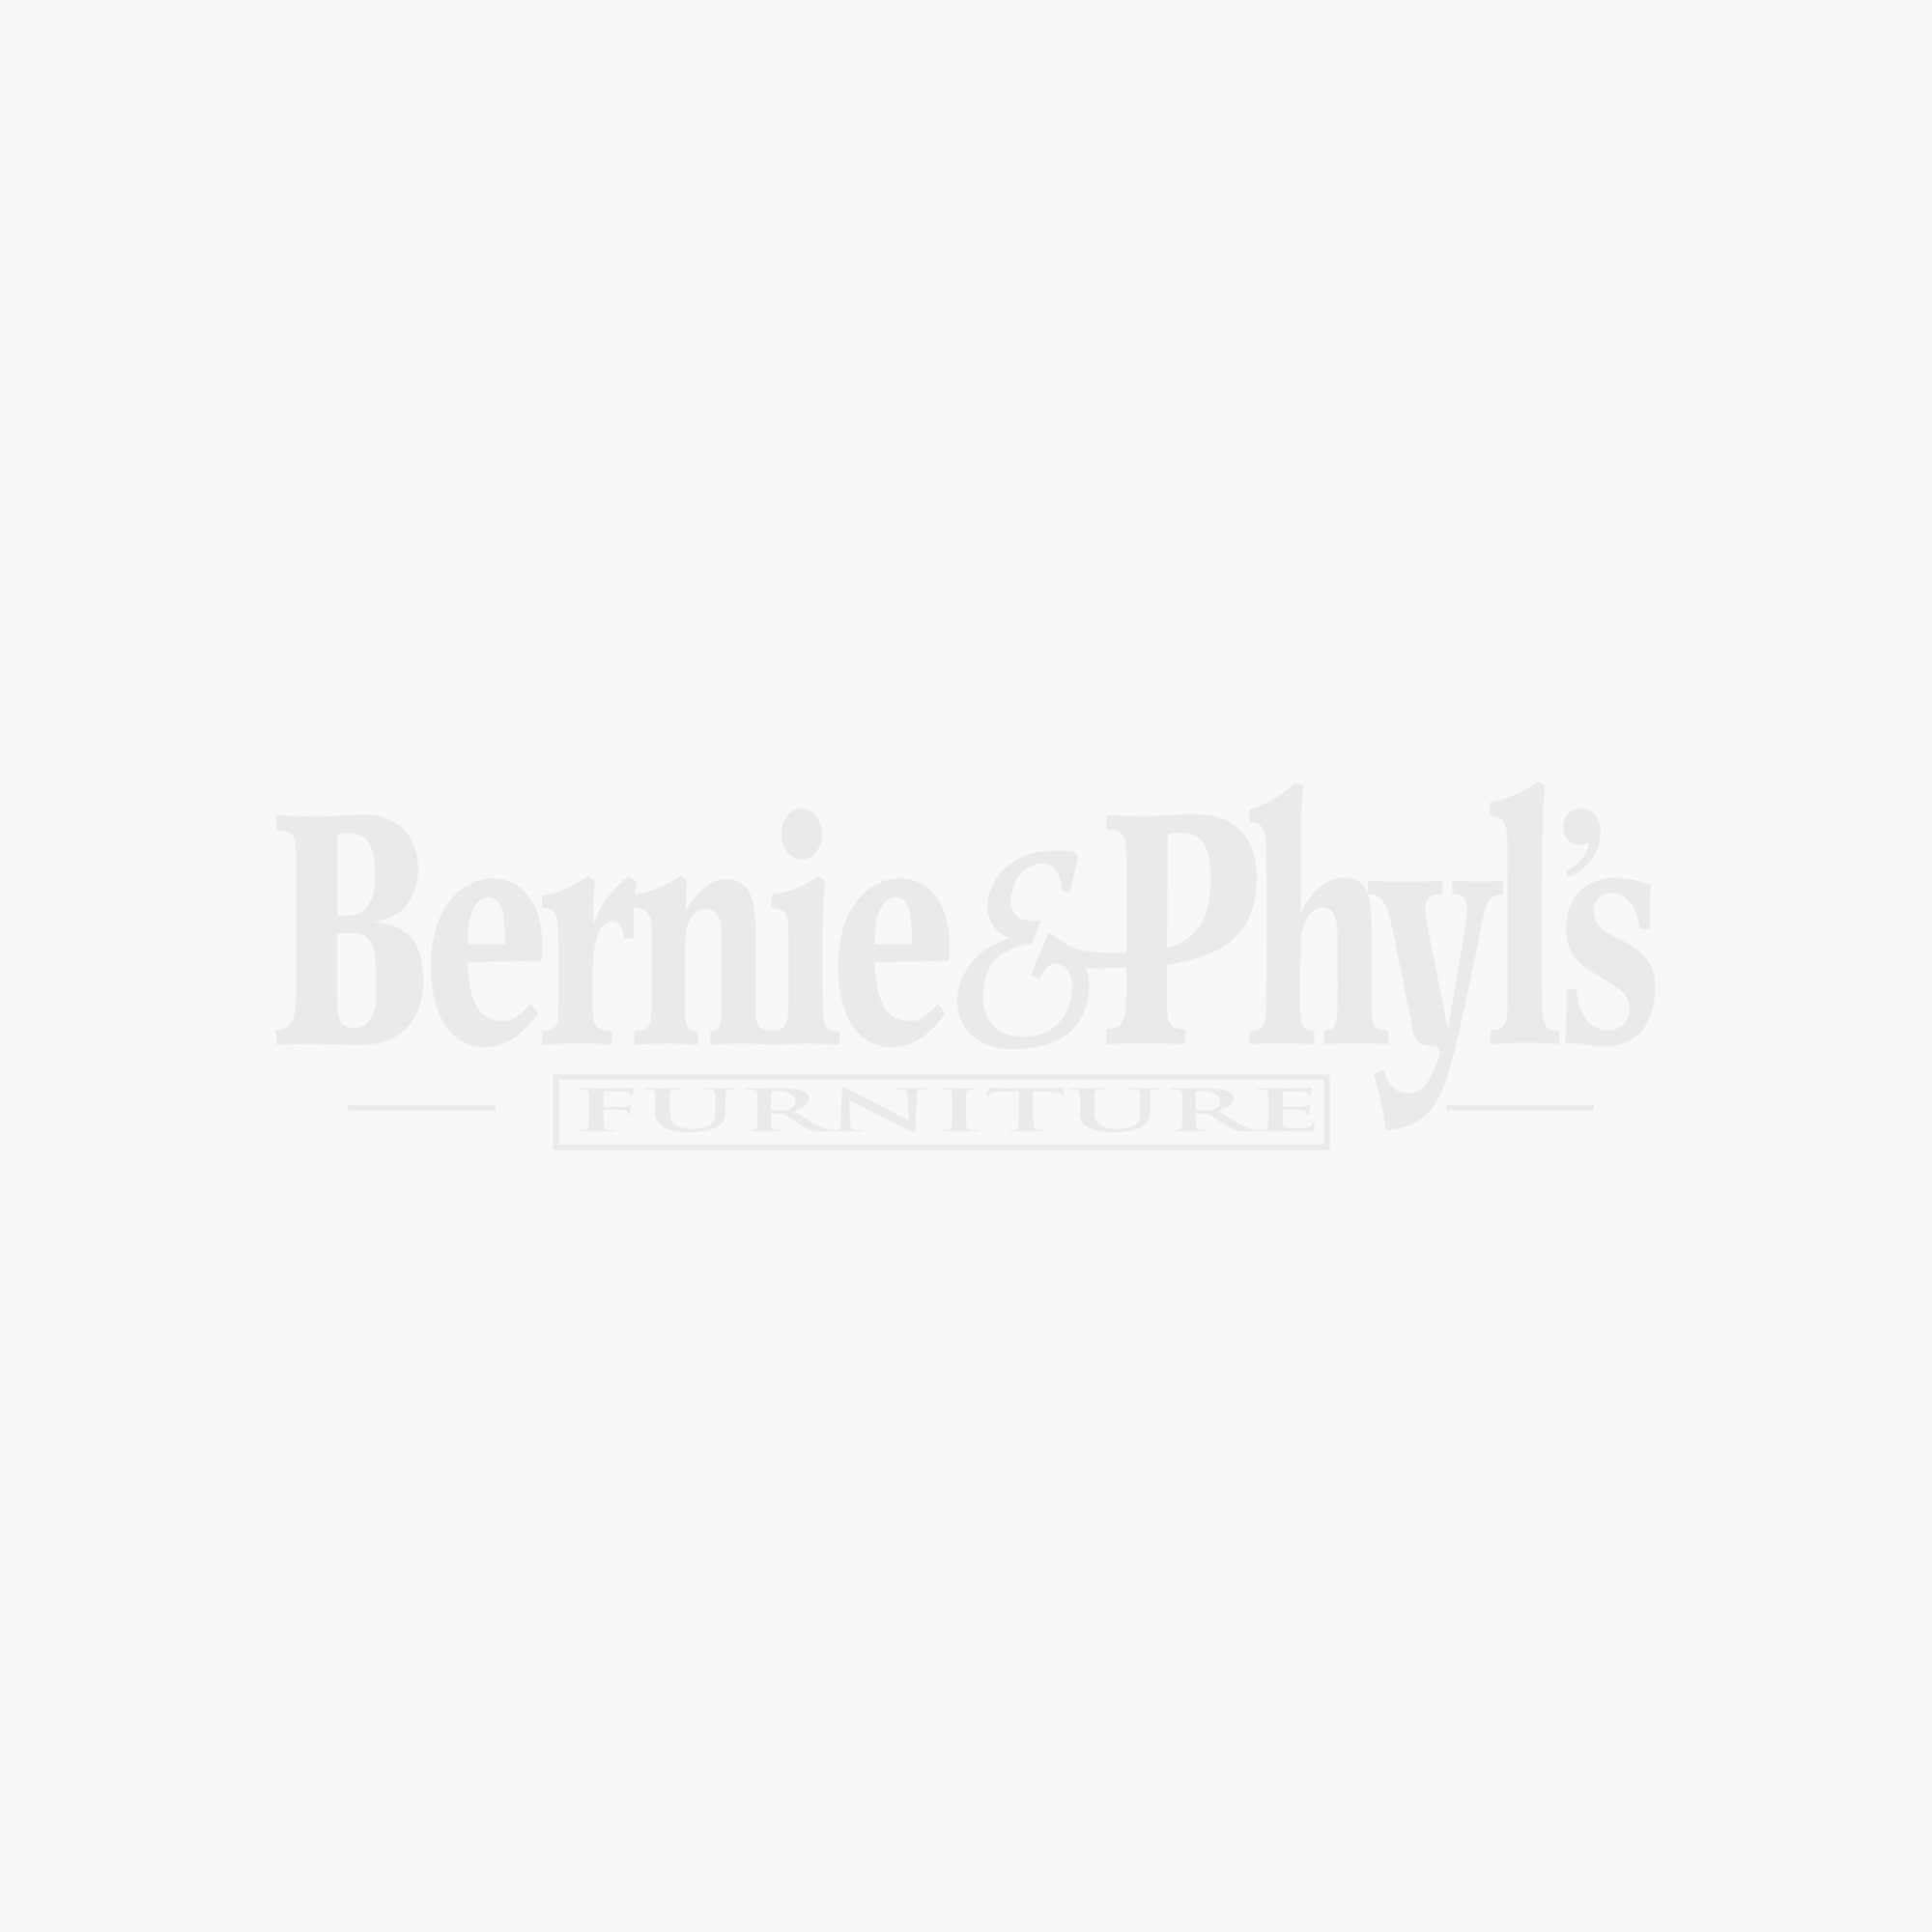 boston graffiti sofa table bernie phyl s furniture